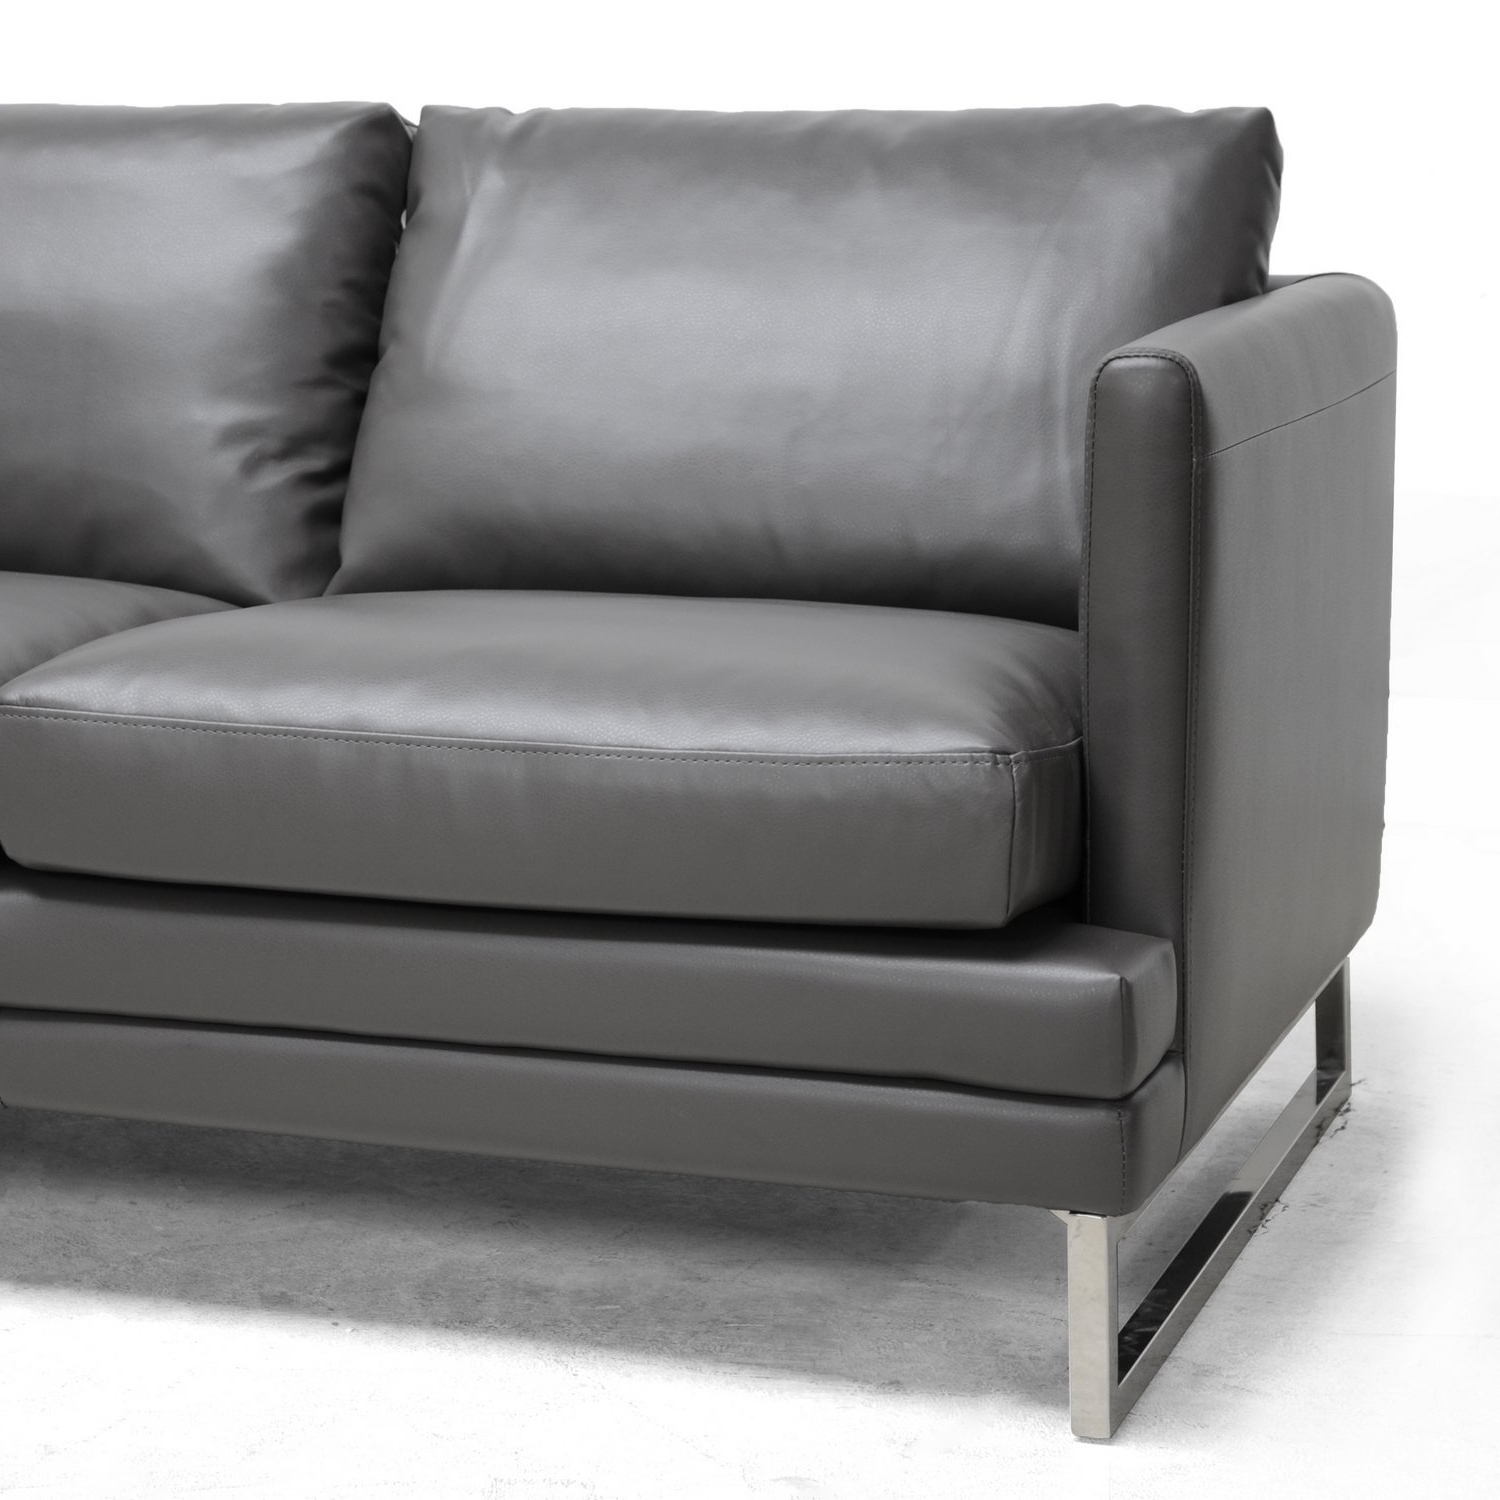 Favorite High Point Nc Sectional Sofas In Contemporary Leather Sofas Italian Sofa Uk Modern Furniture High (View 10 of 15)